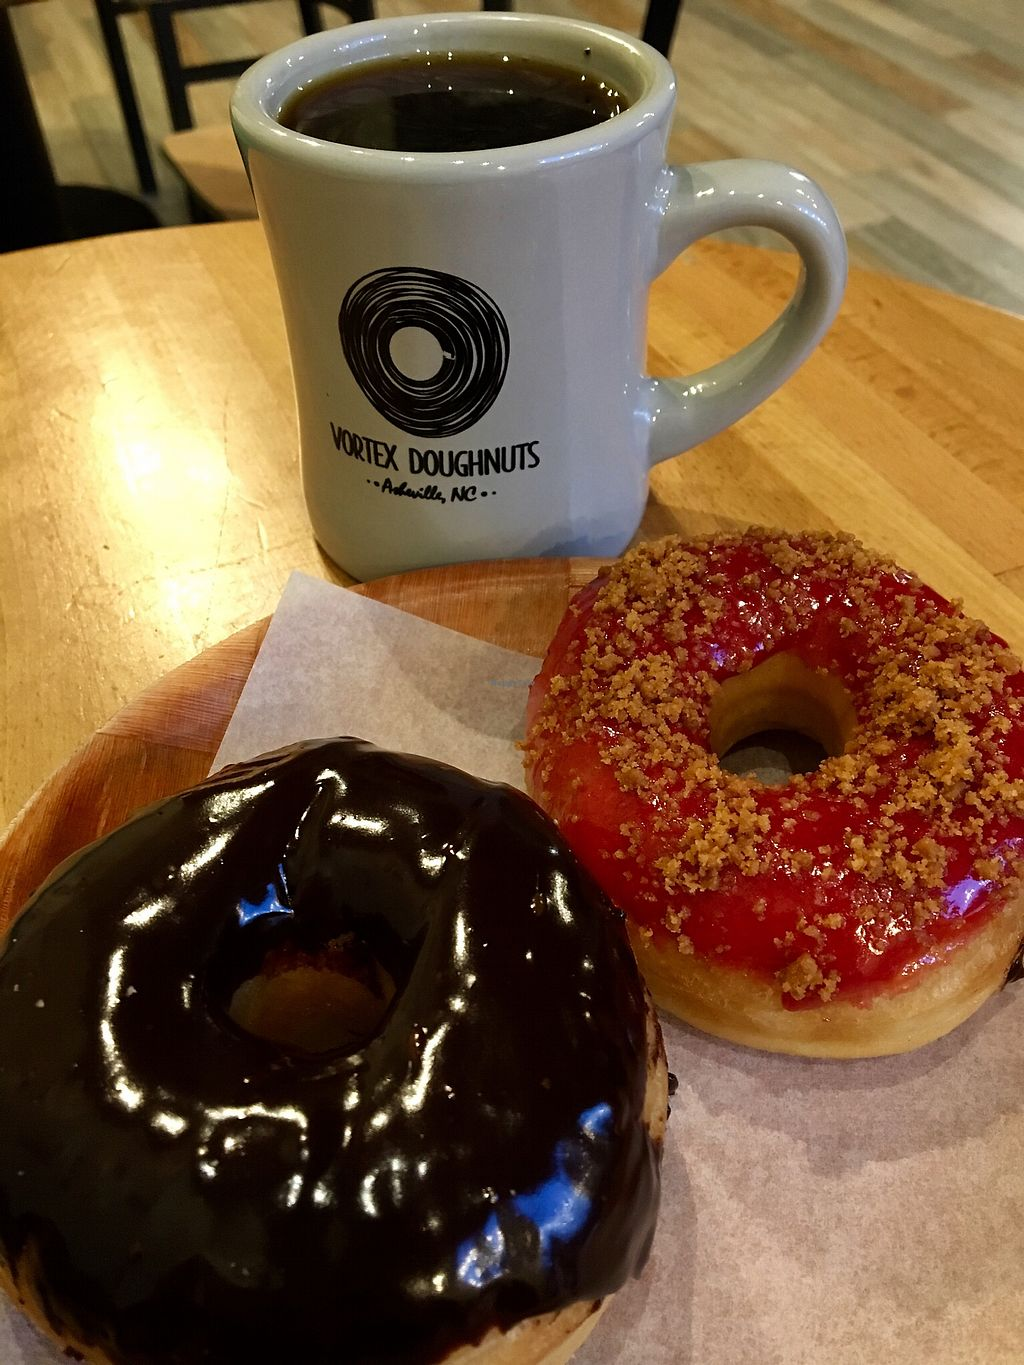 "Photo of Vortex Doughnuts  by <a href=""/members/profile/Thepennsyltuckyvegan"">Thepennsyltuckyvegan</a> <br/>Chocolate and Raspberry Crumble <br/> March 15, 2018  - <a href='/contact/abuse/image/61456/371138'>Report</a>"